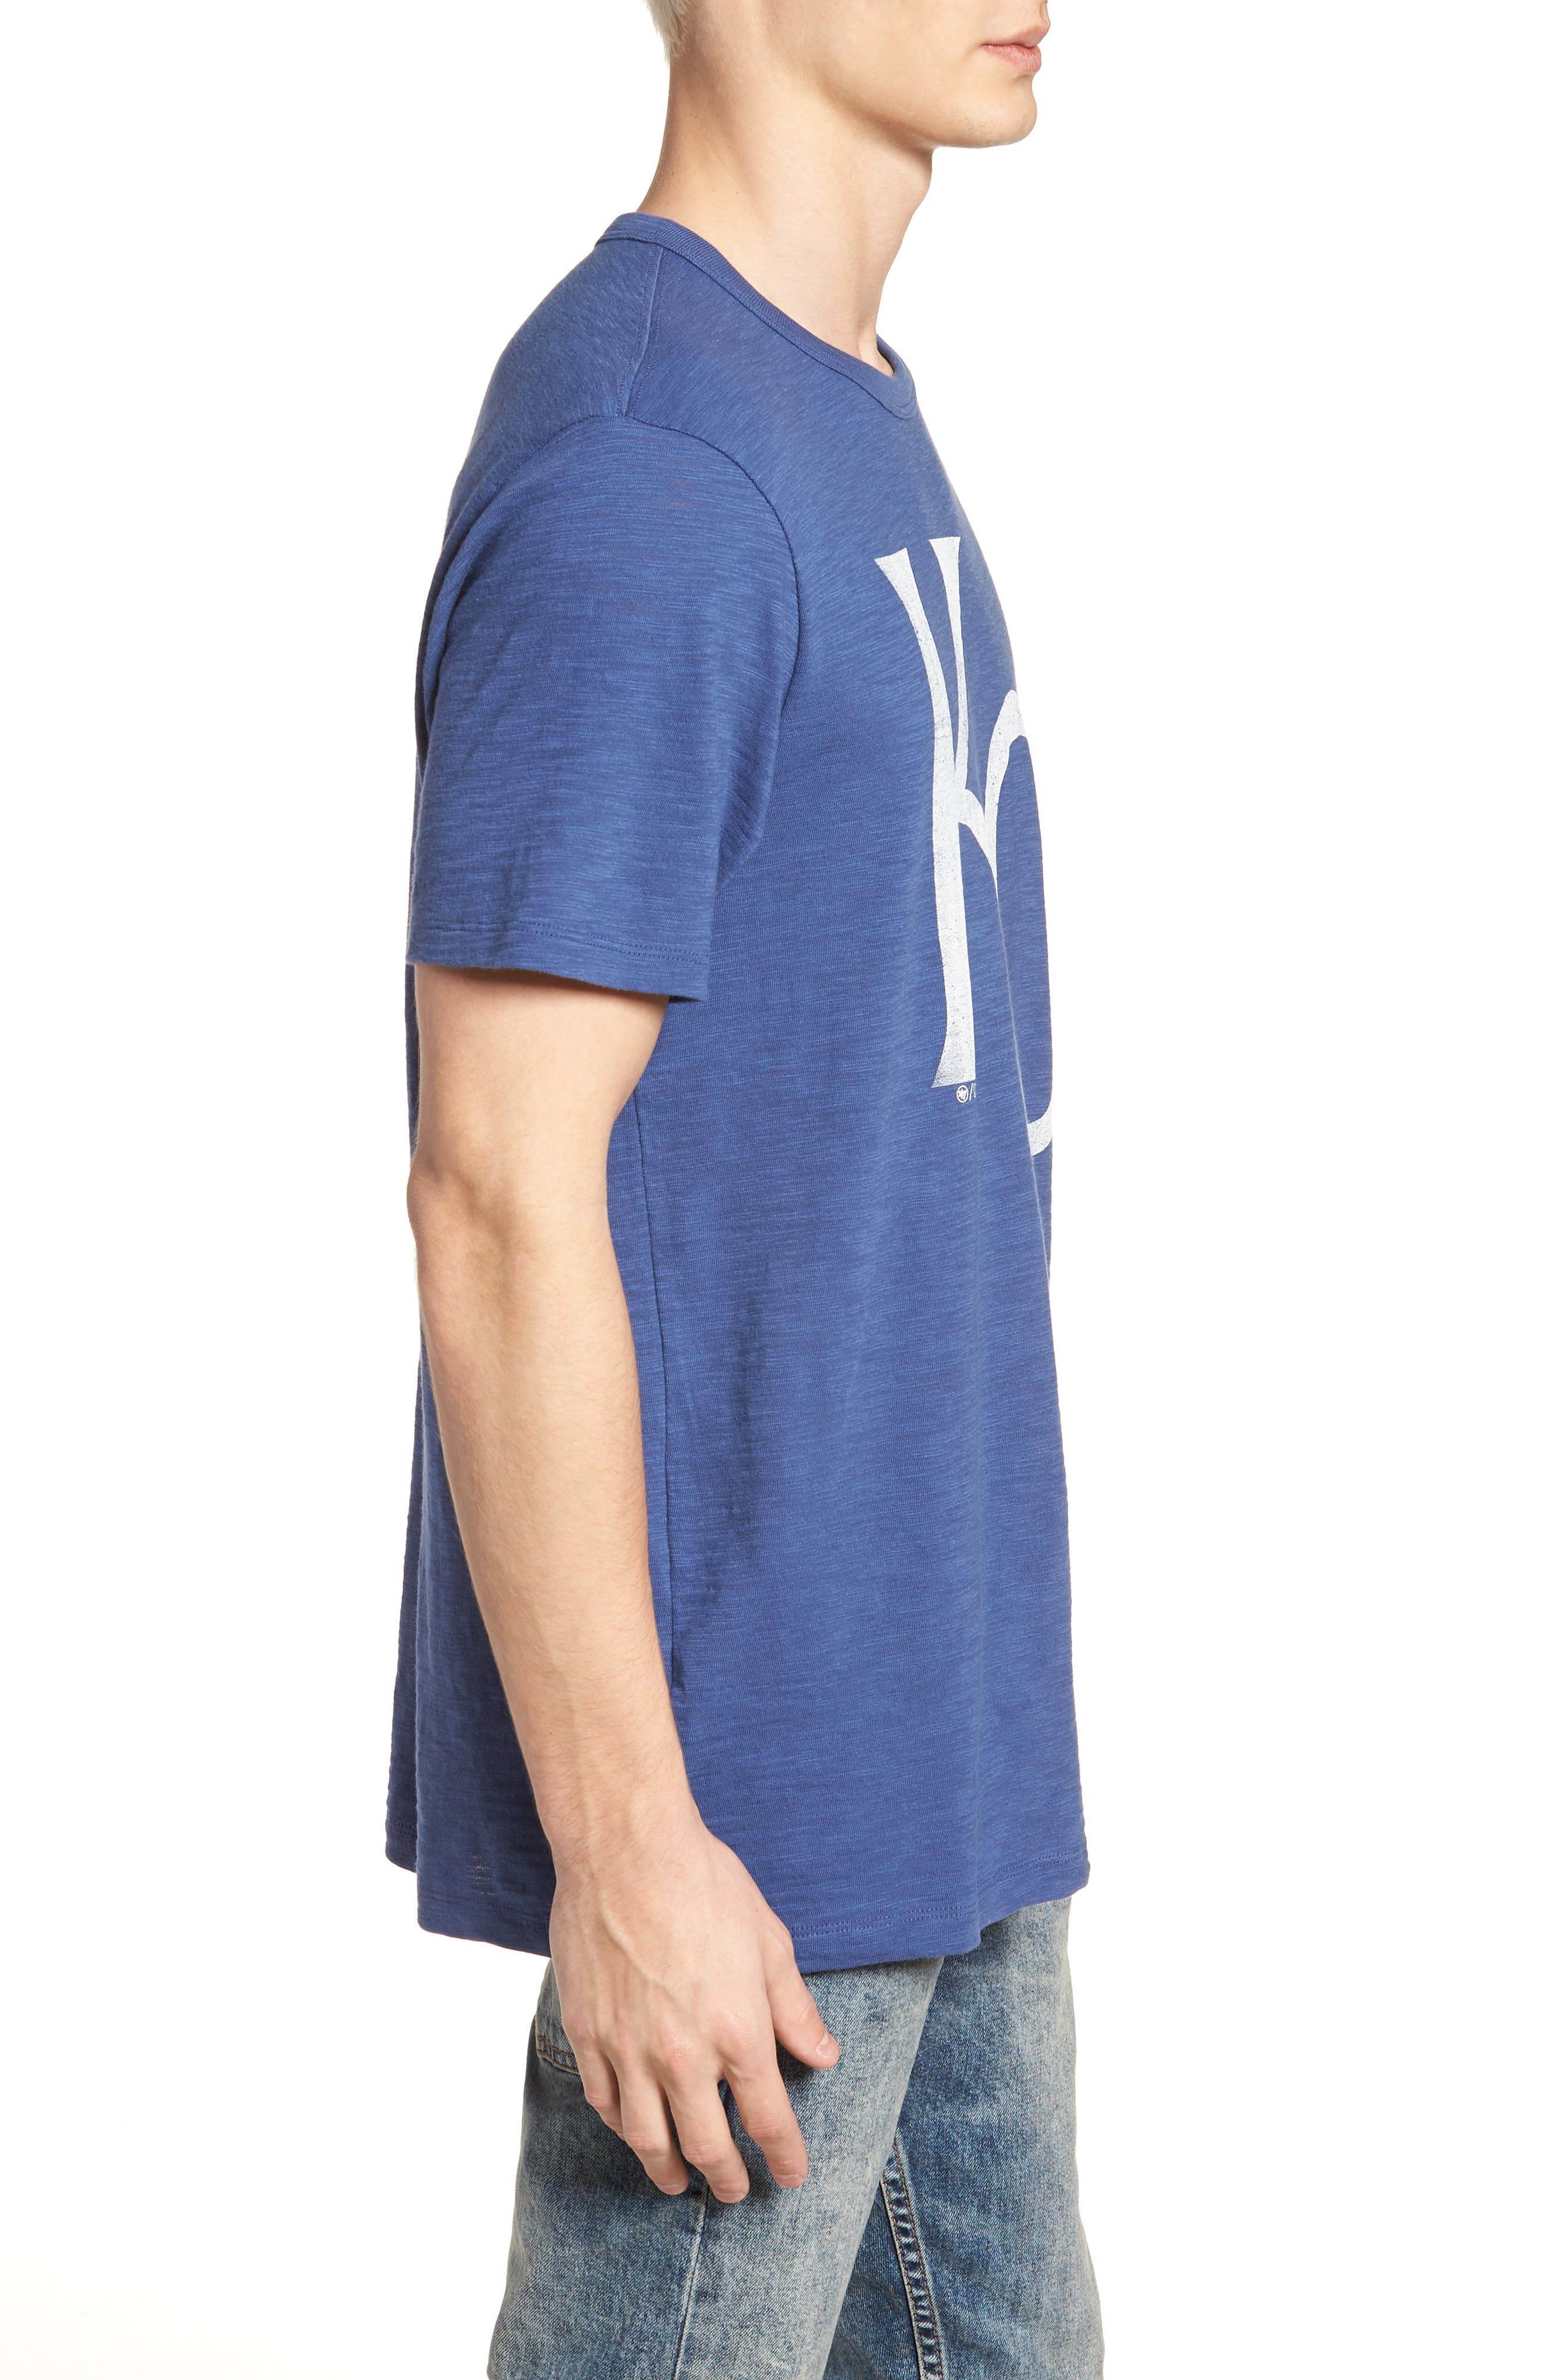 MLB Grit Scrum Kansas City Royals T-Shirt,                             Alternate thumbnail 3, color,                             Bleacher Blue